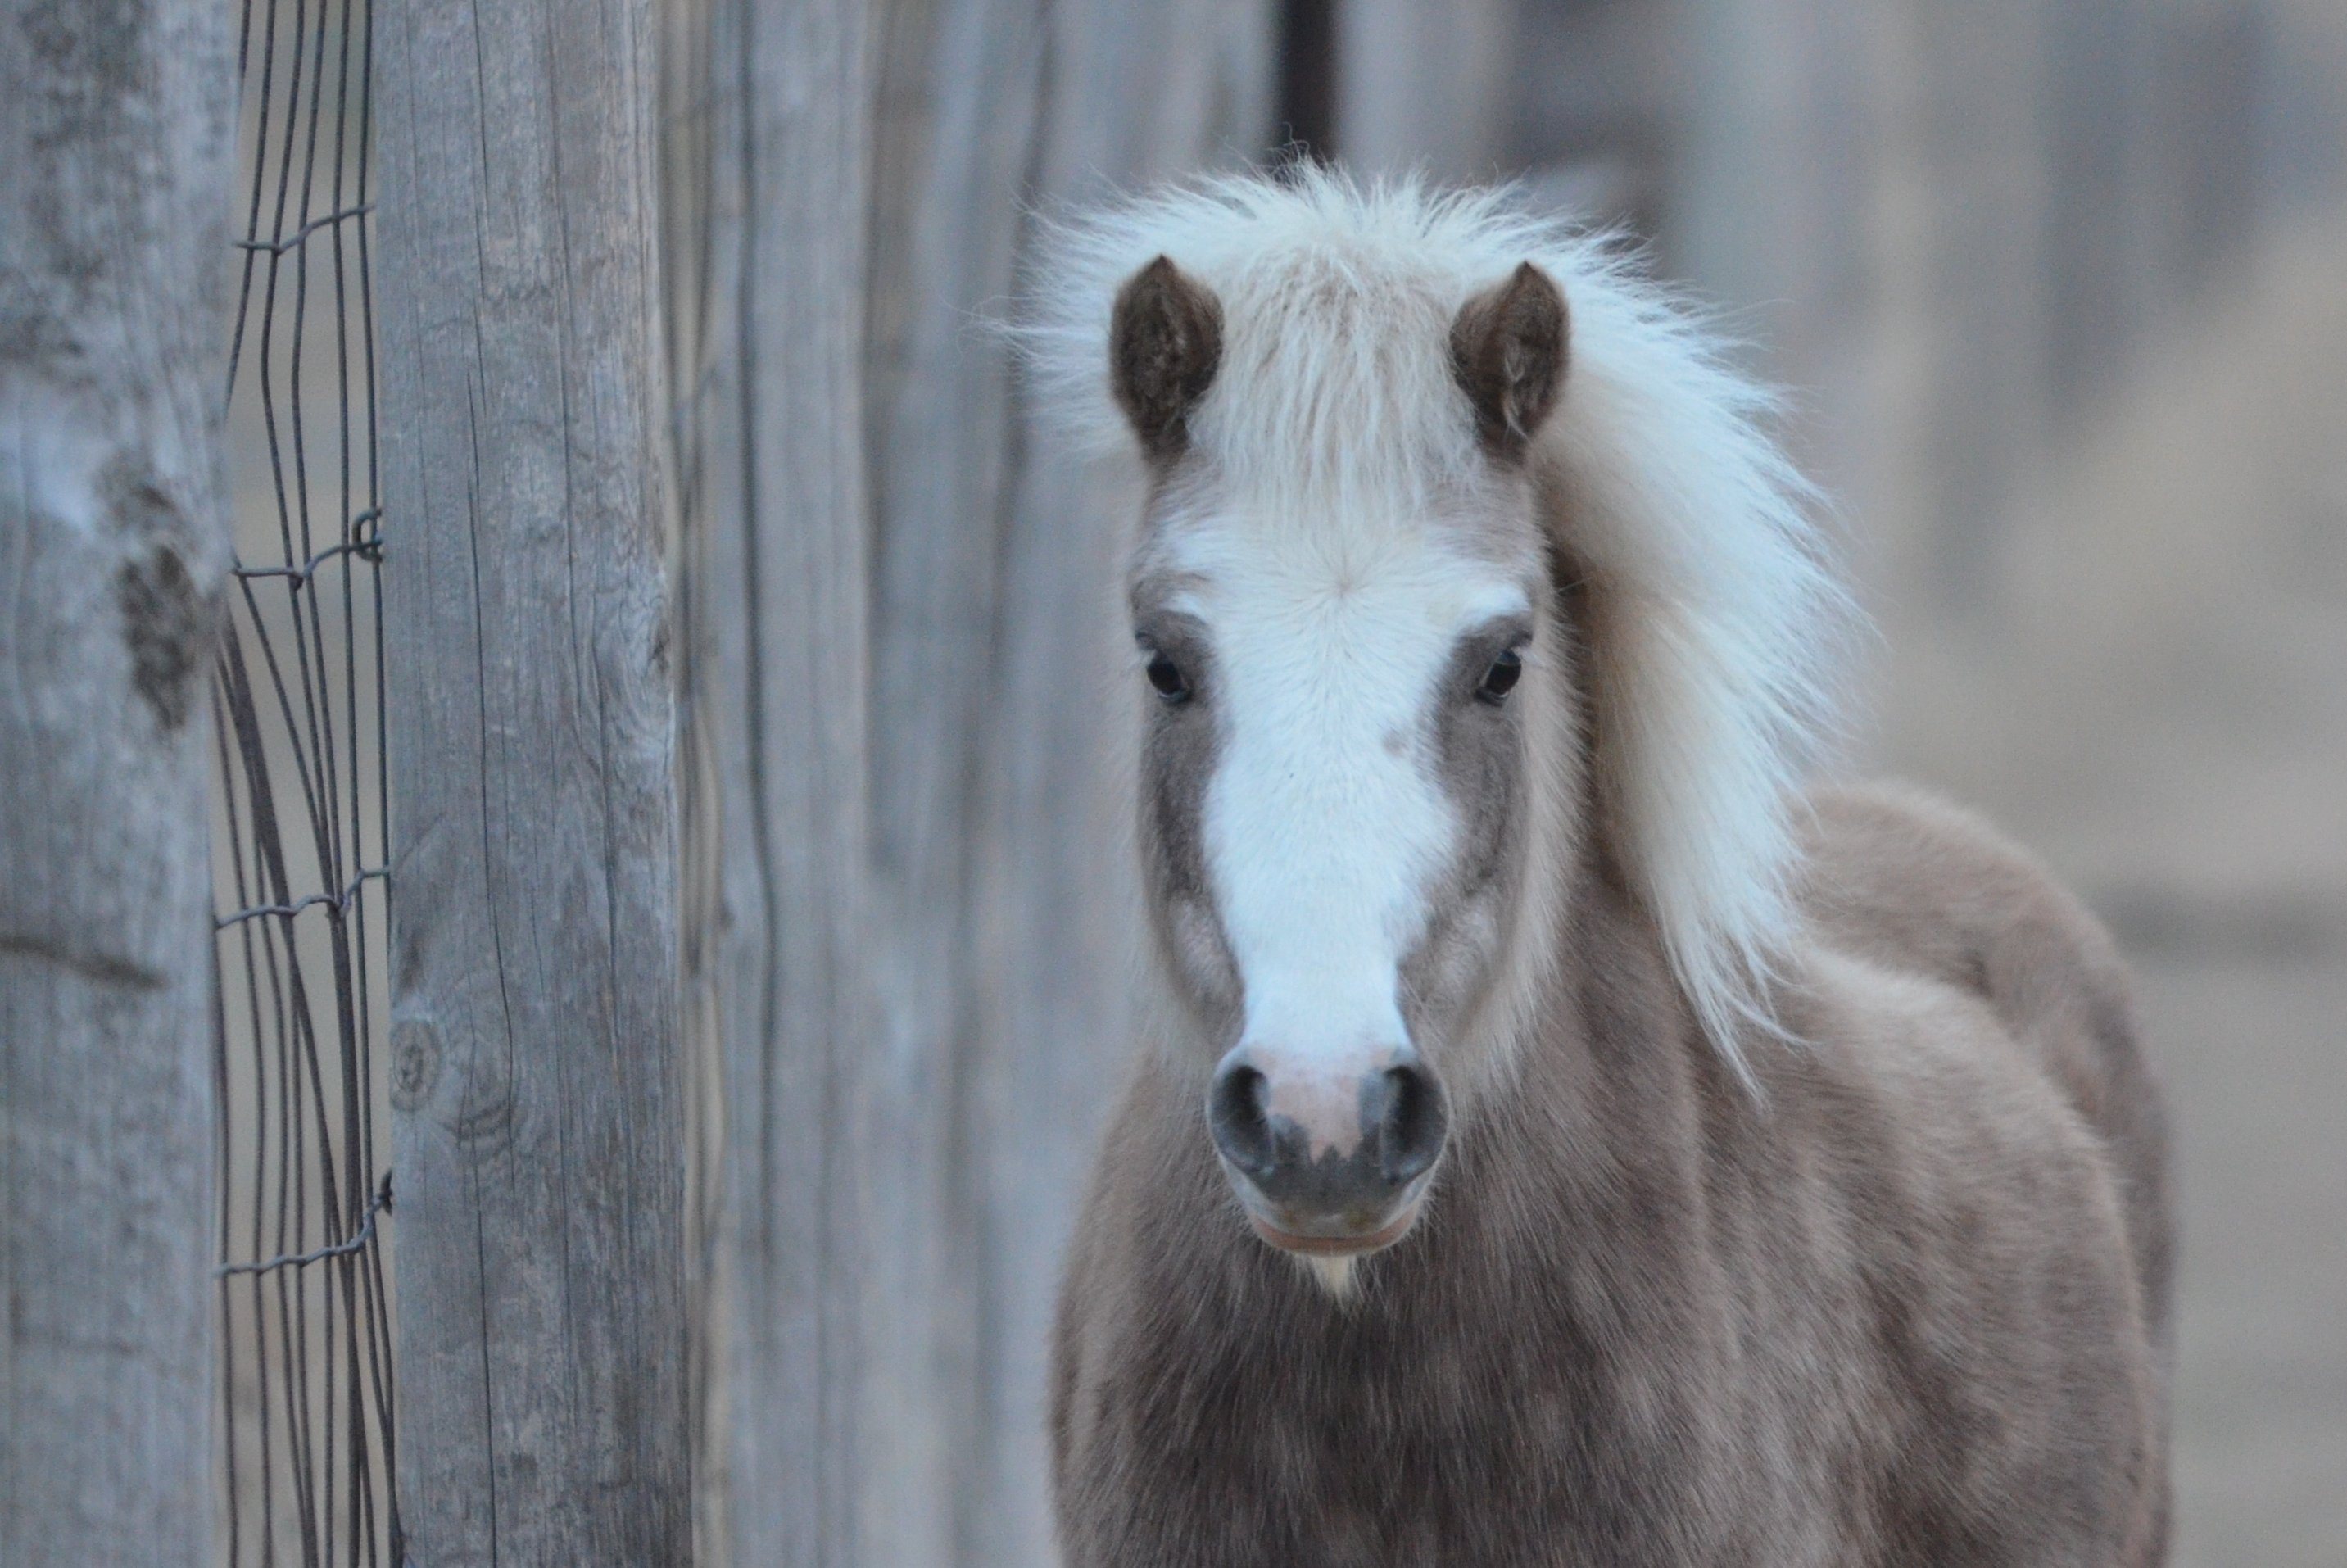 Maintaining a Healthy Horse or Pony